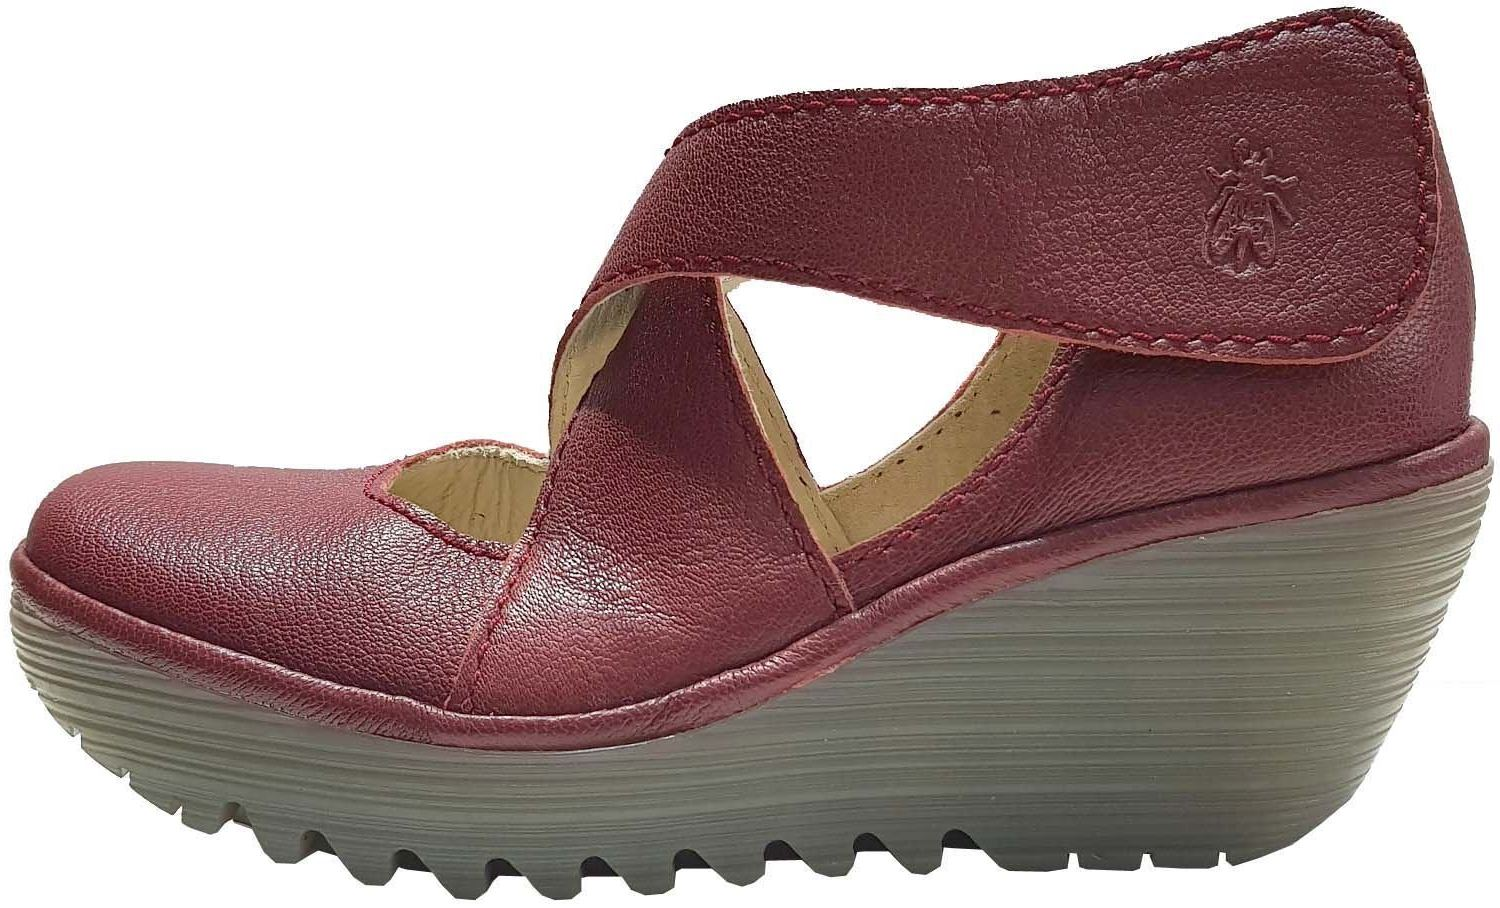 28aef8ddb2f2 Fly london Yogo Red Womens Leather Cross Bar Wedge Shoes Quick View